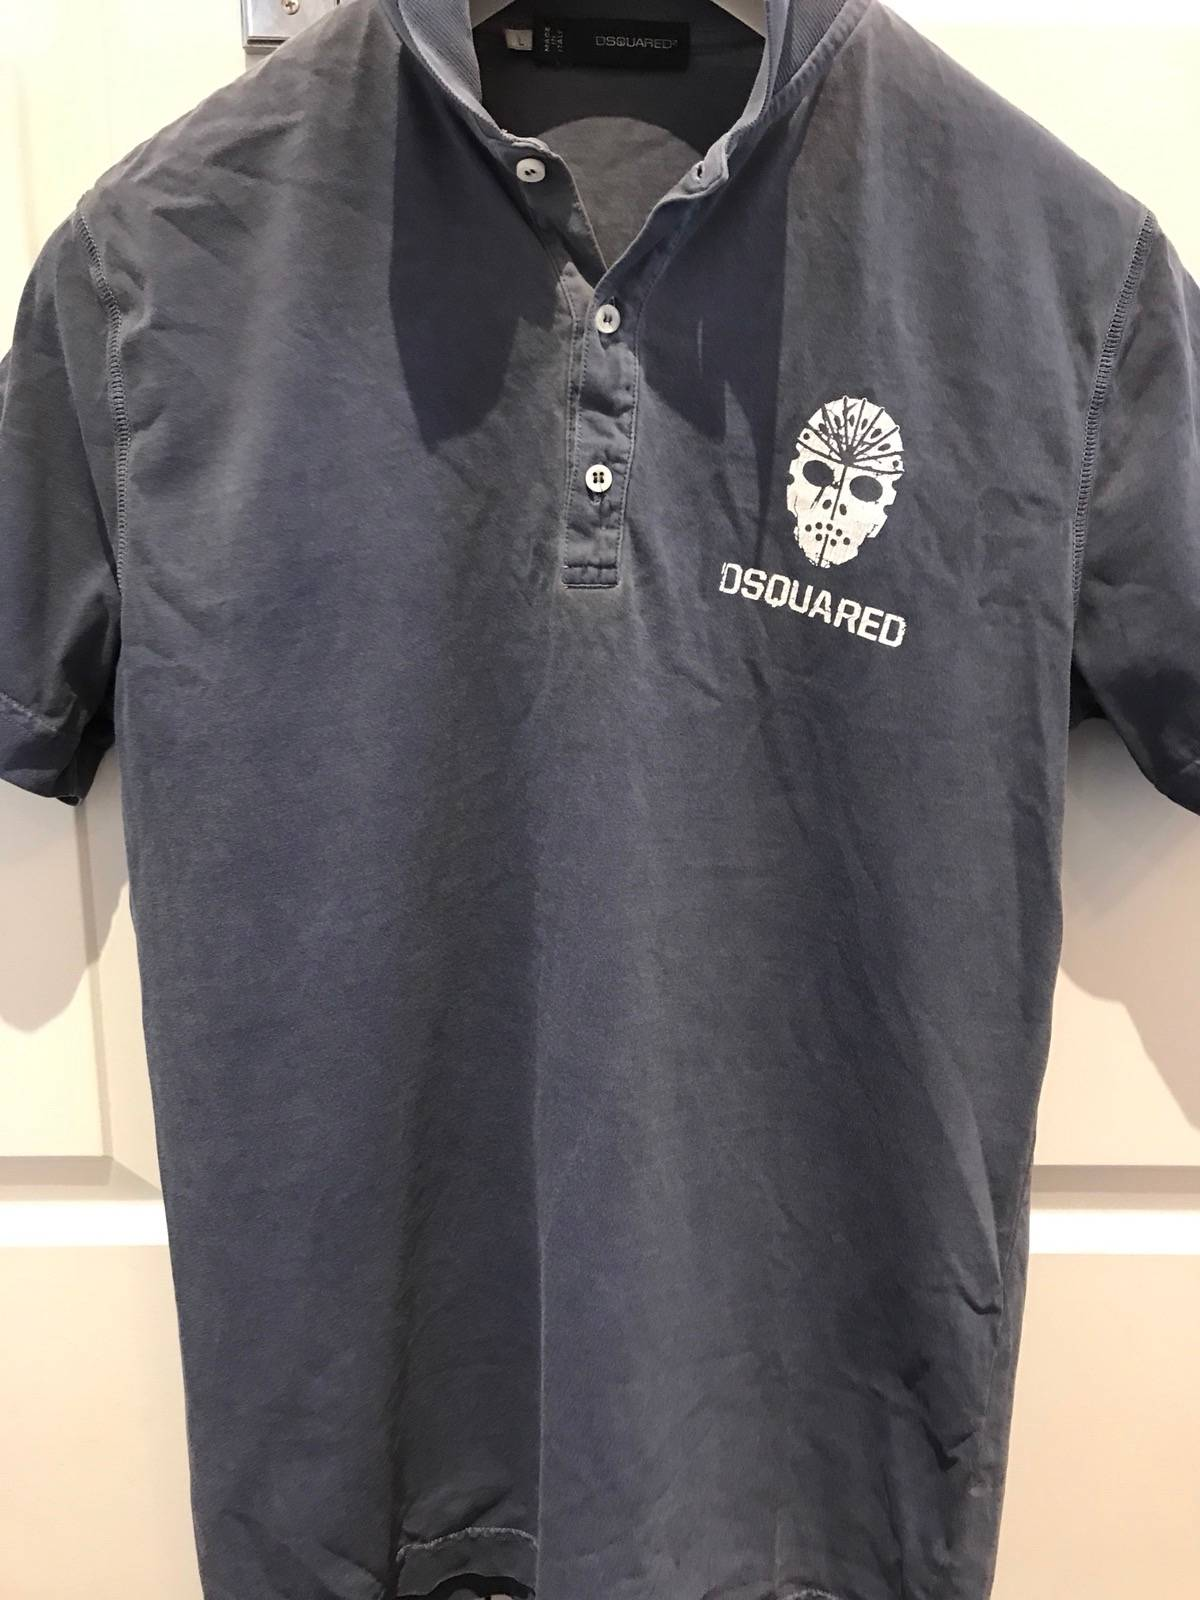 Dsquared2 Short Sleeve Polo Style Shirt Size L Short Sleeve T